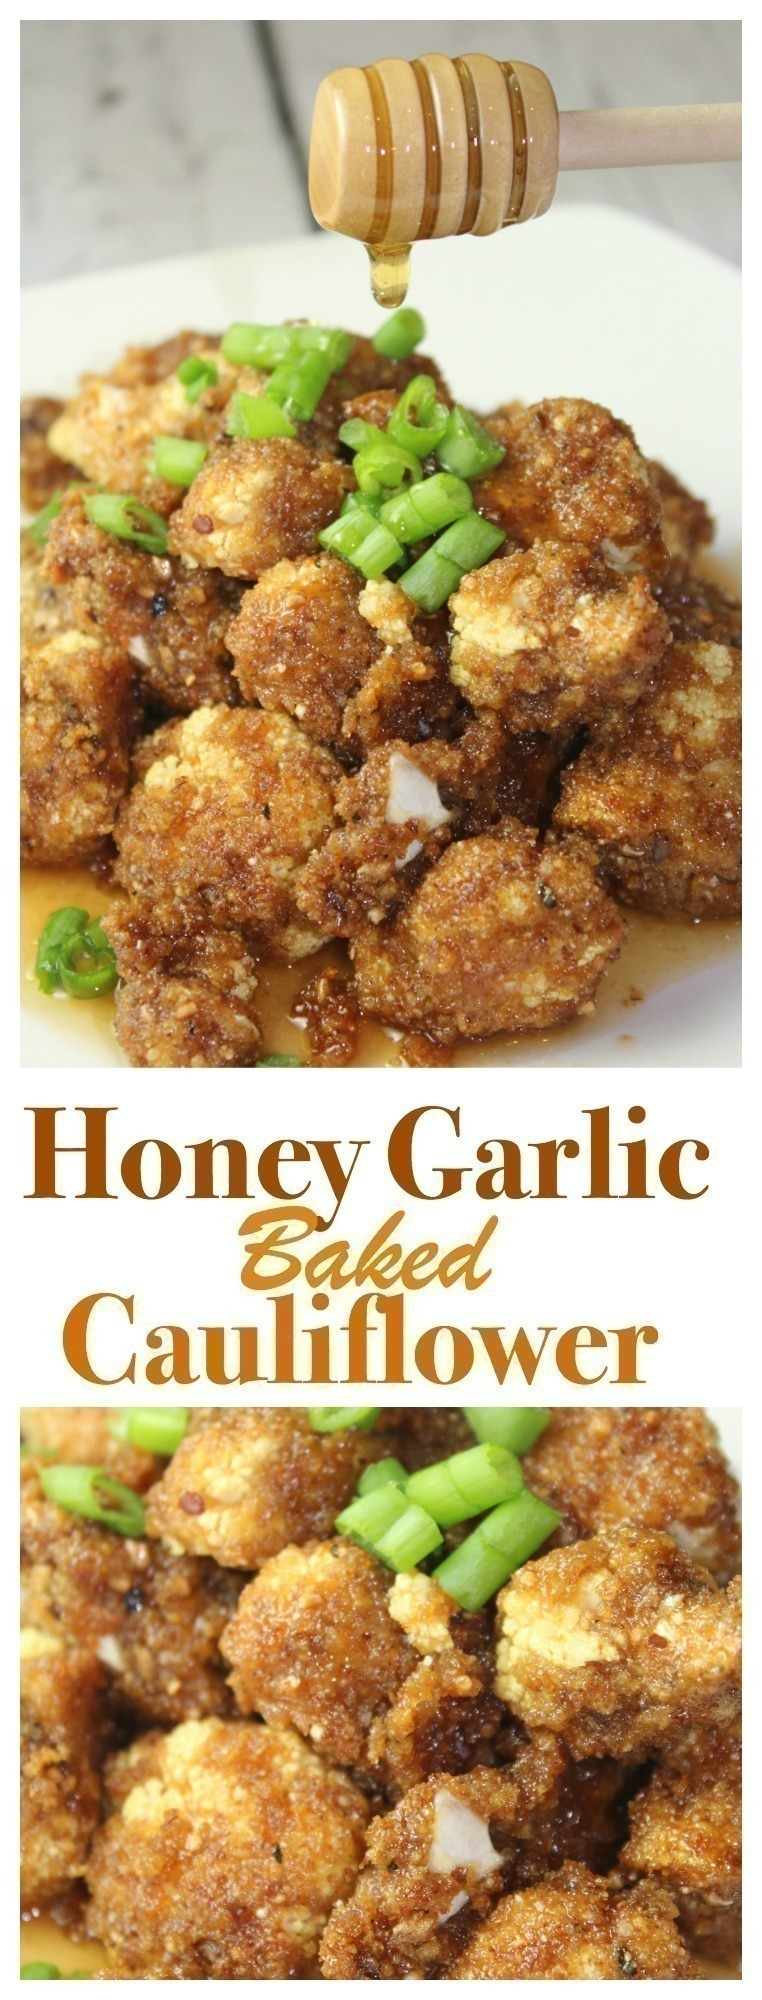 This healthy honey garlic baked cauliflower comes together easily with simple ingredients and is perfect for a simple meatless meal option!   #cauliflower #baked #healthy #meatless #honey #garlic #dinner #easydinner